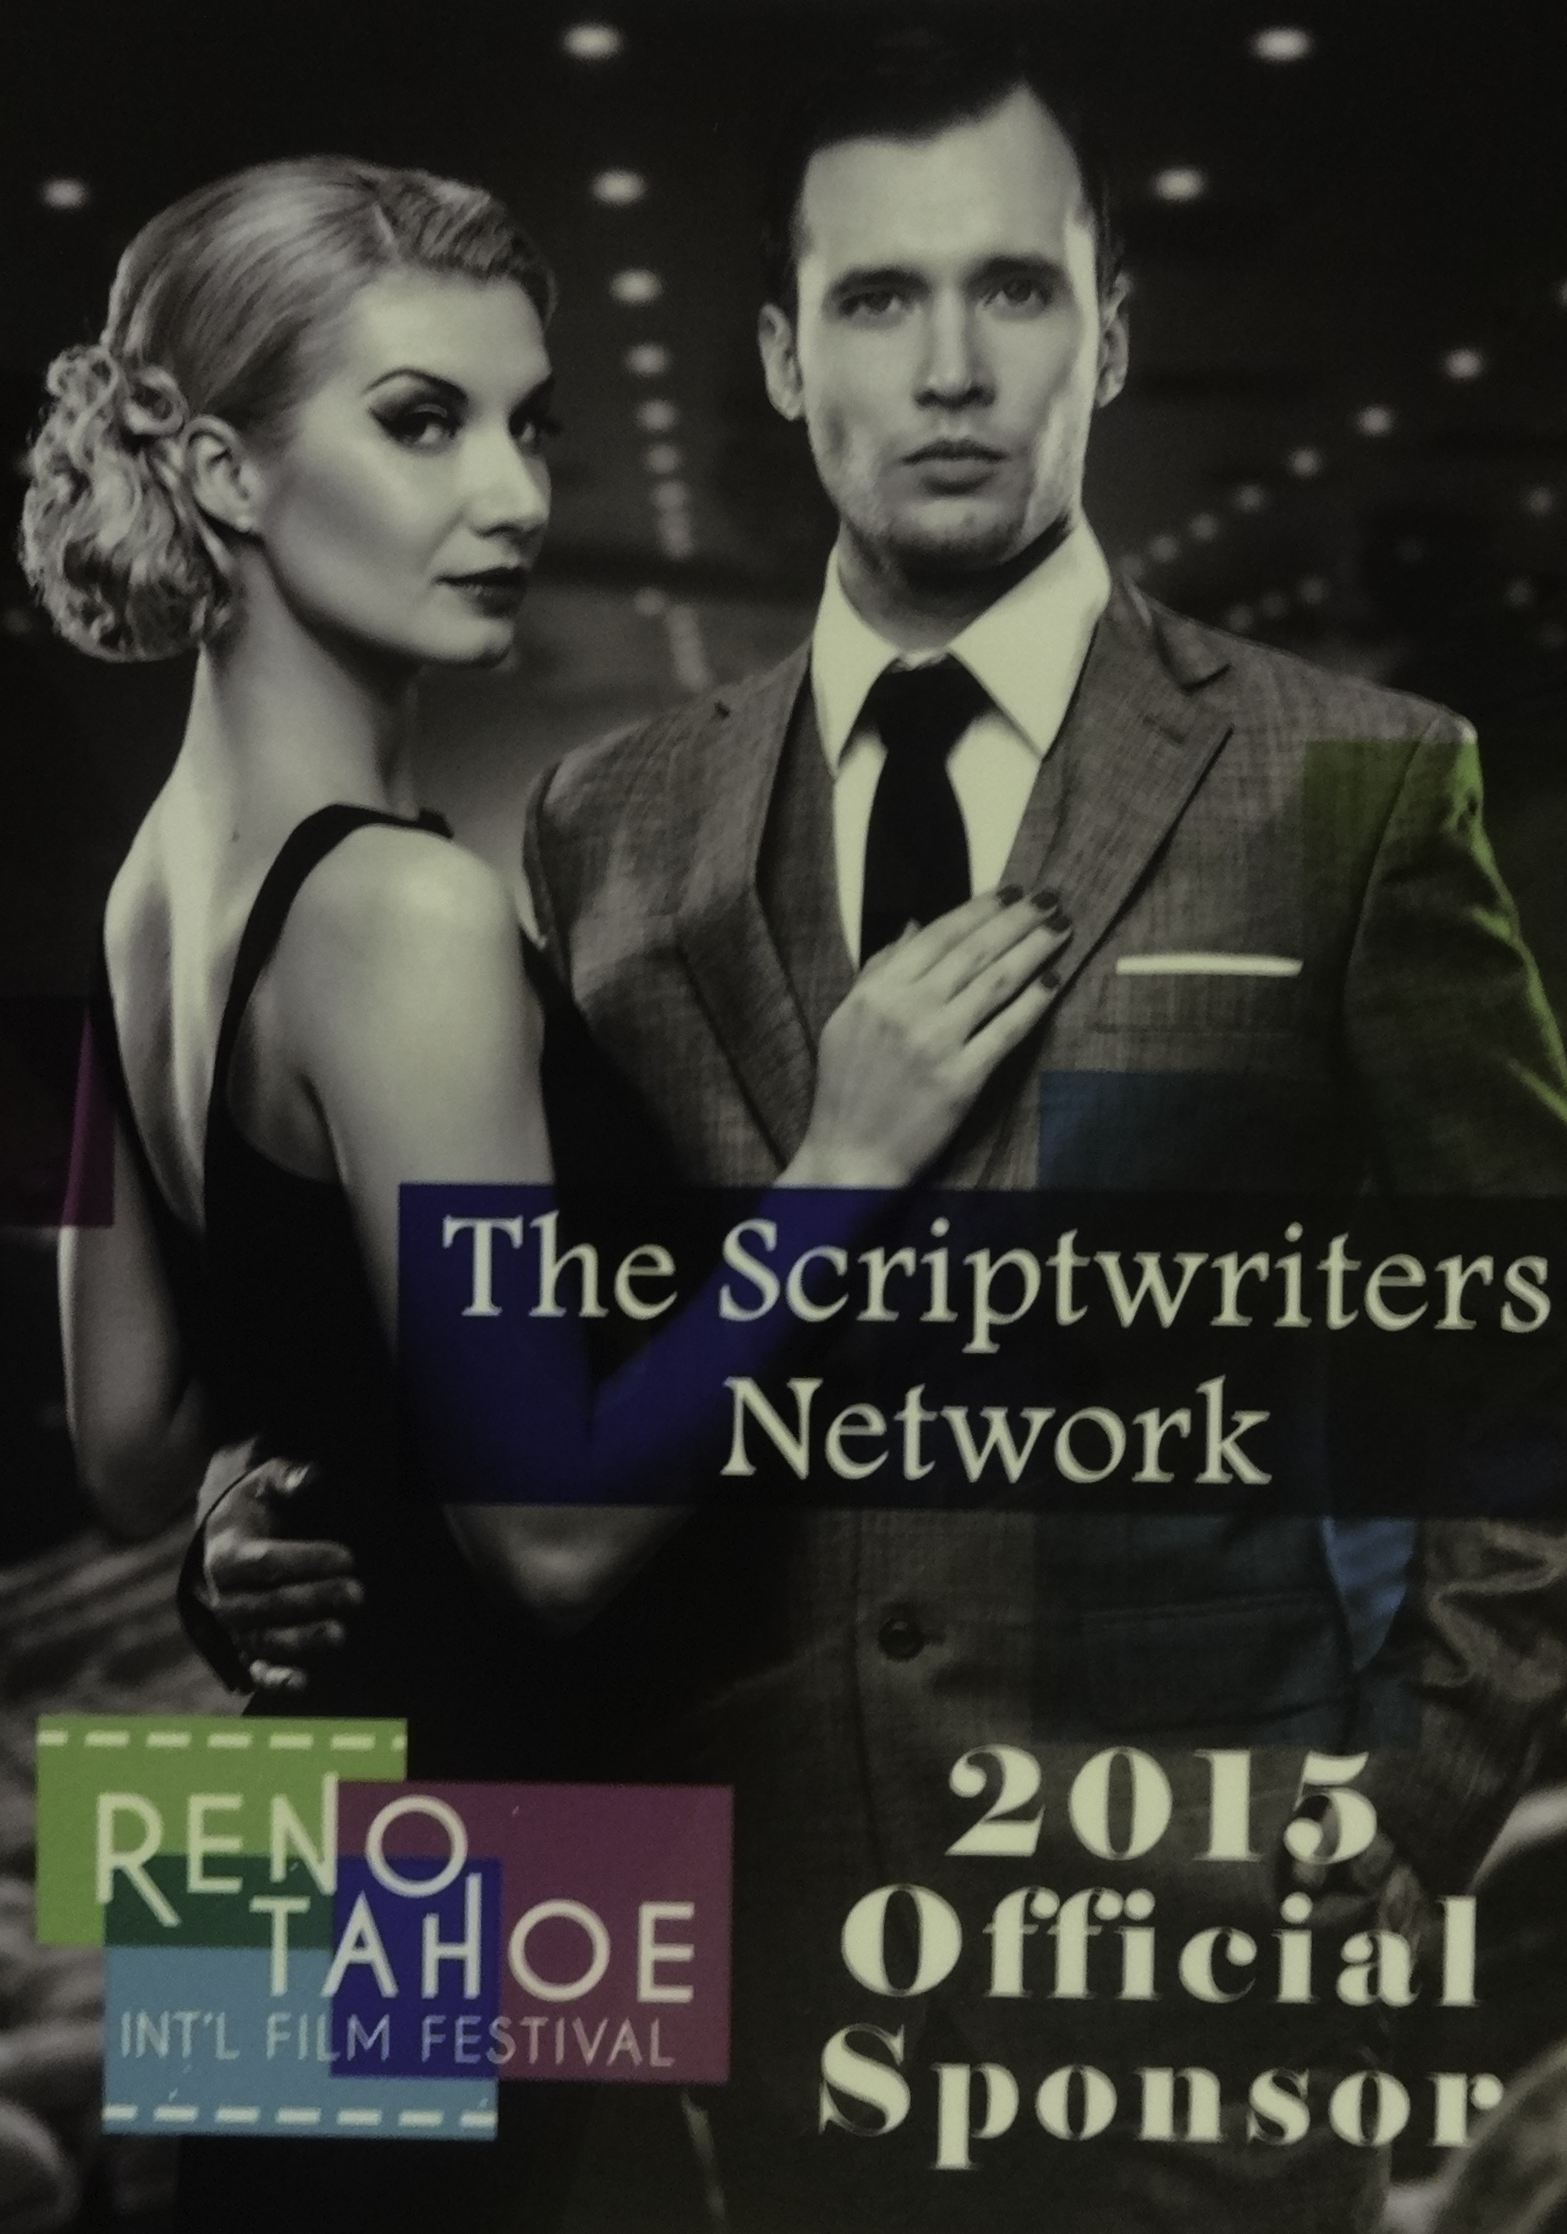 The Scriptwriters Network 2015 Official Sponsor